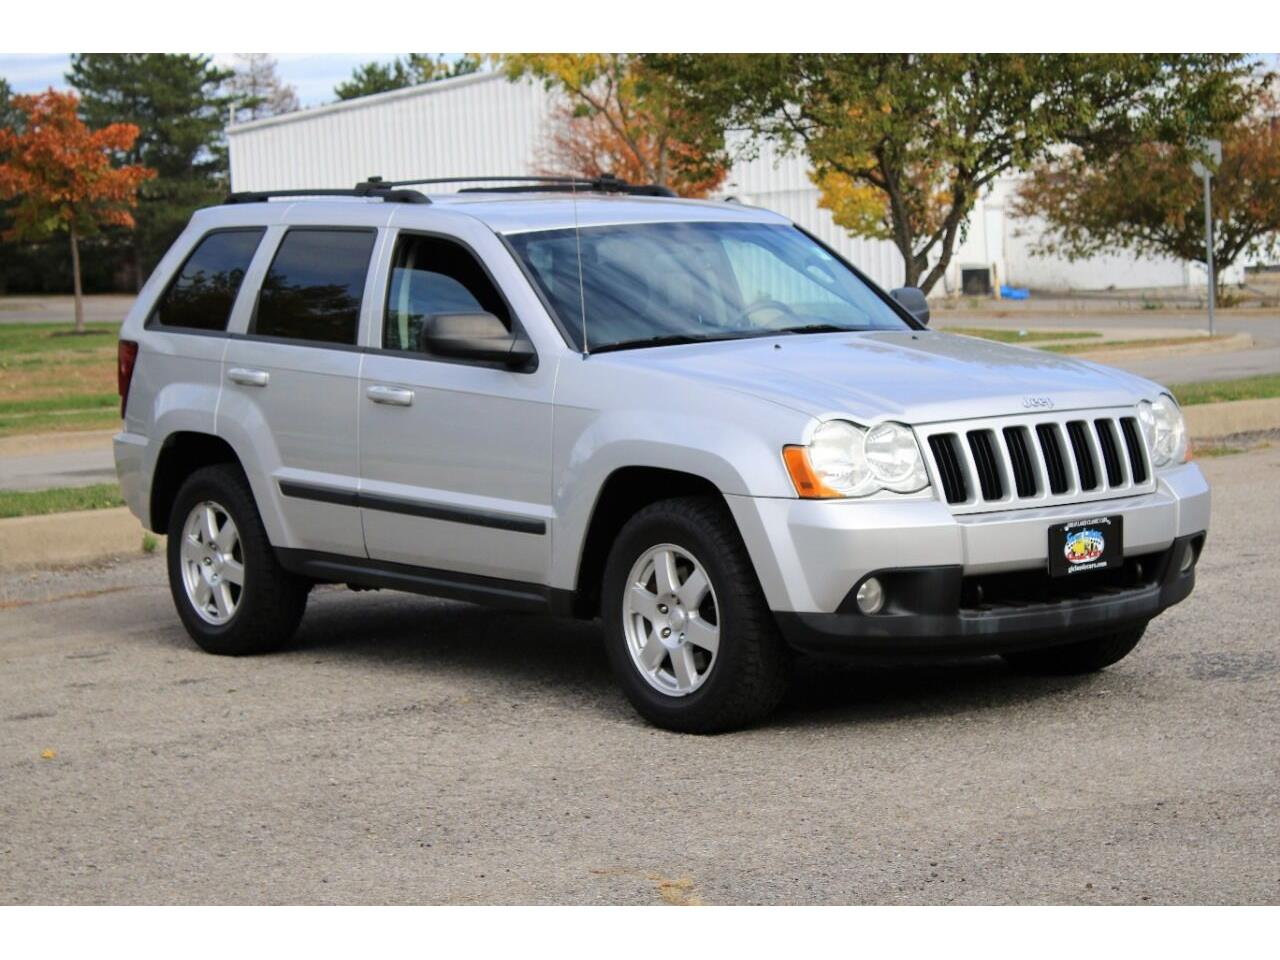 2009 Jeep Grand Cherokee (CC-1386195) for sale in Hilton, New York